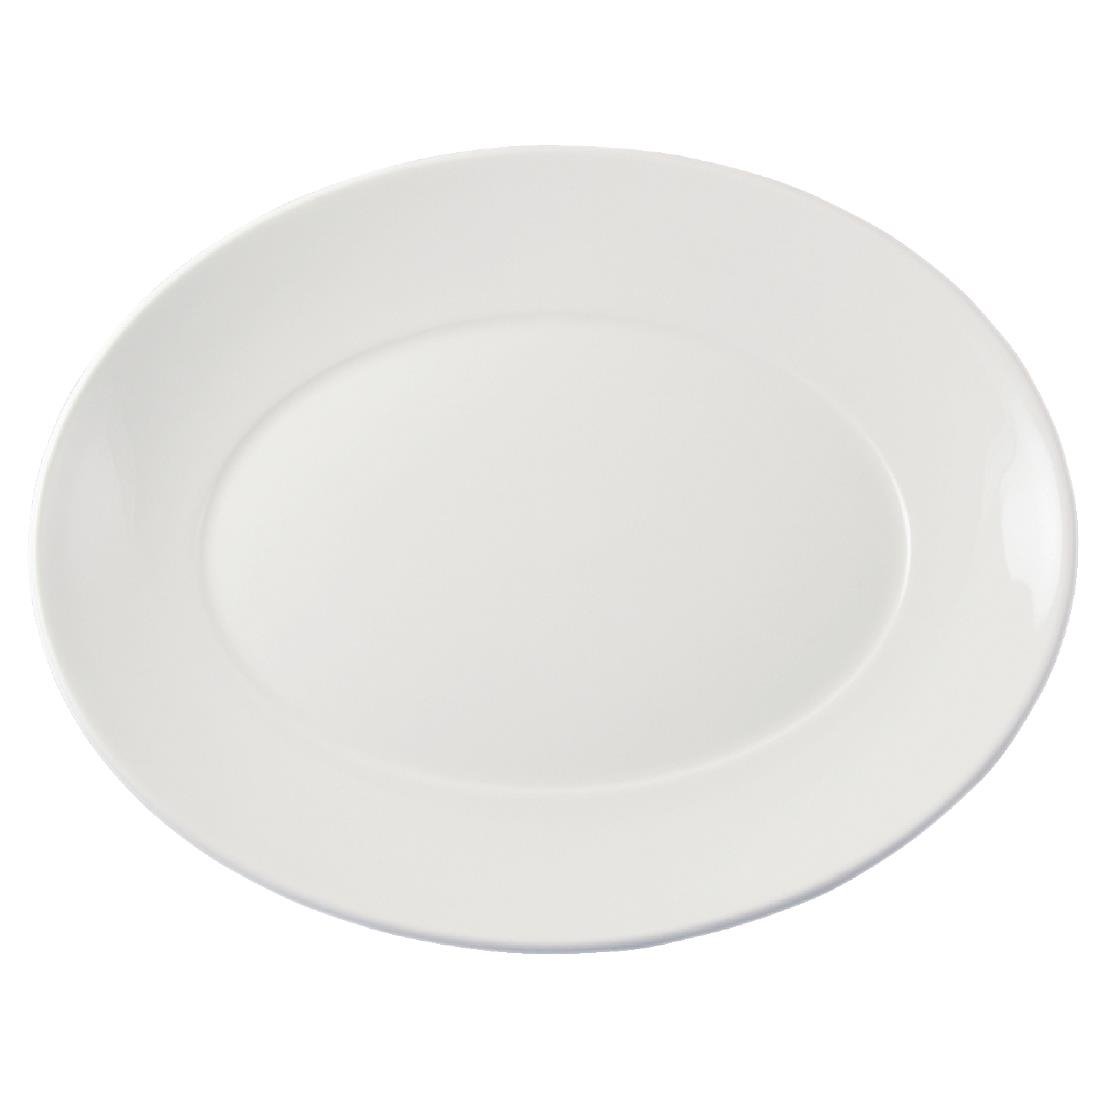 Image of Dudson Flair Oval Platters 296mm (Pack of 12) Pack of 12